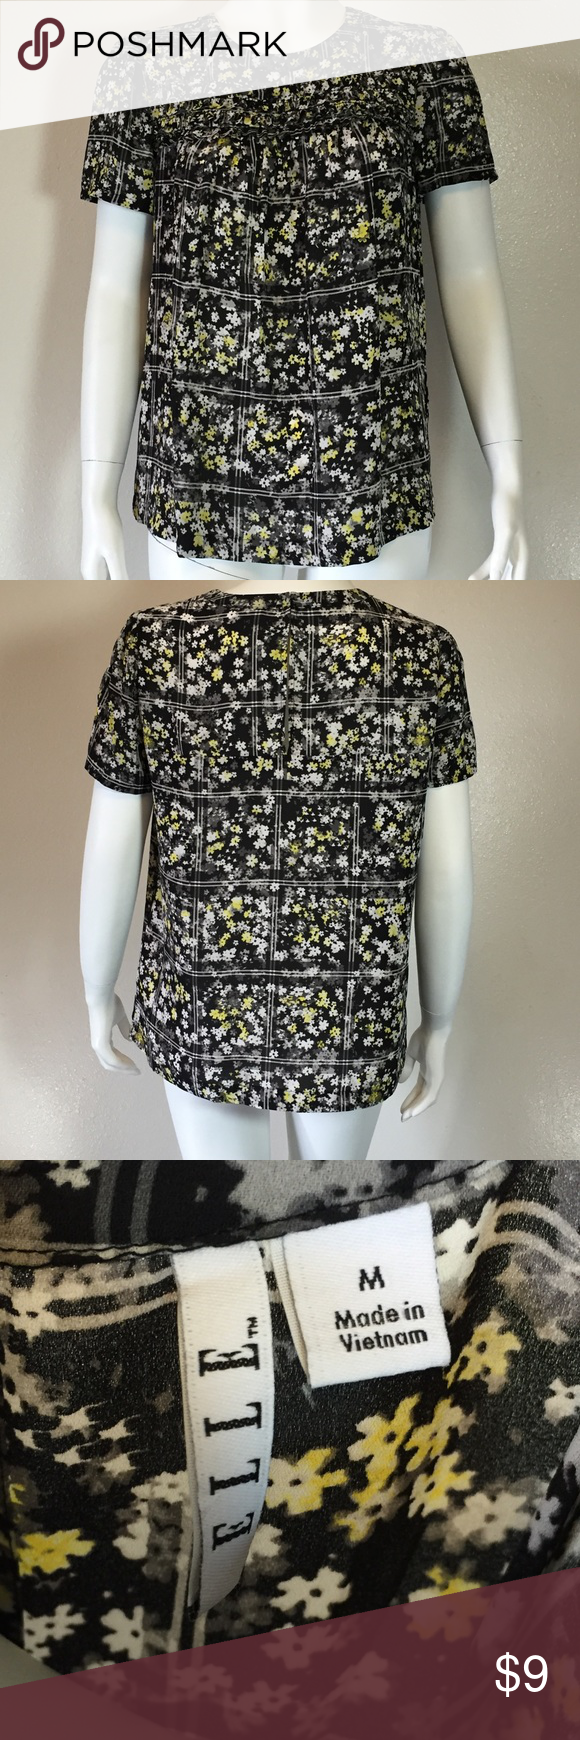 ELLE sheer floral top Excellent condition. Has cute ruffling detail at the chest area. elle Tops Blouses